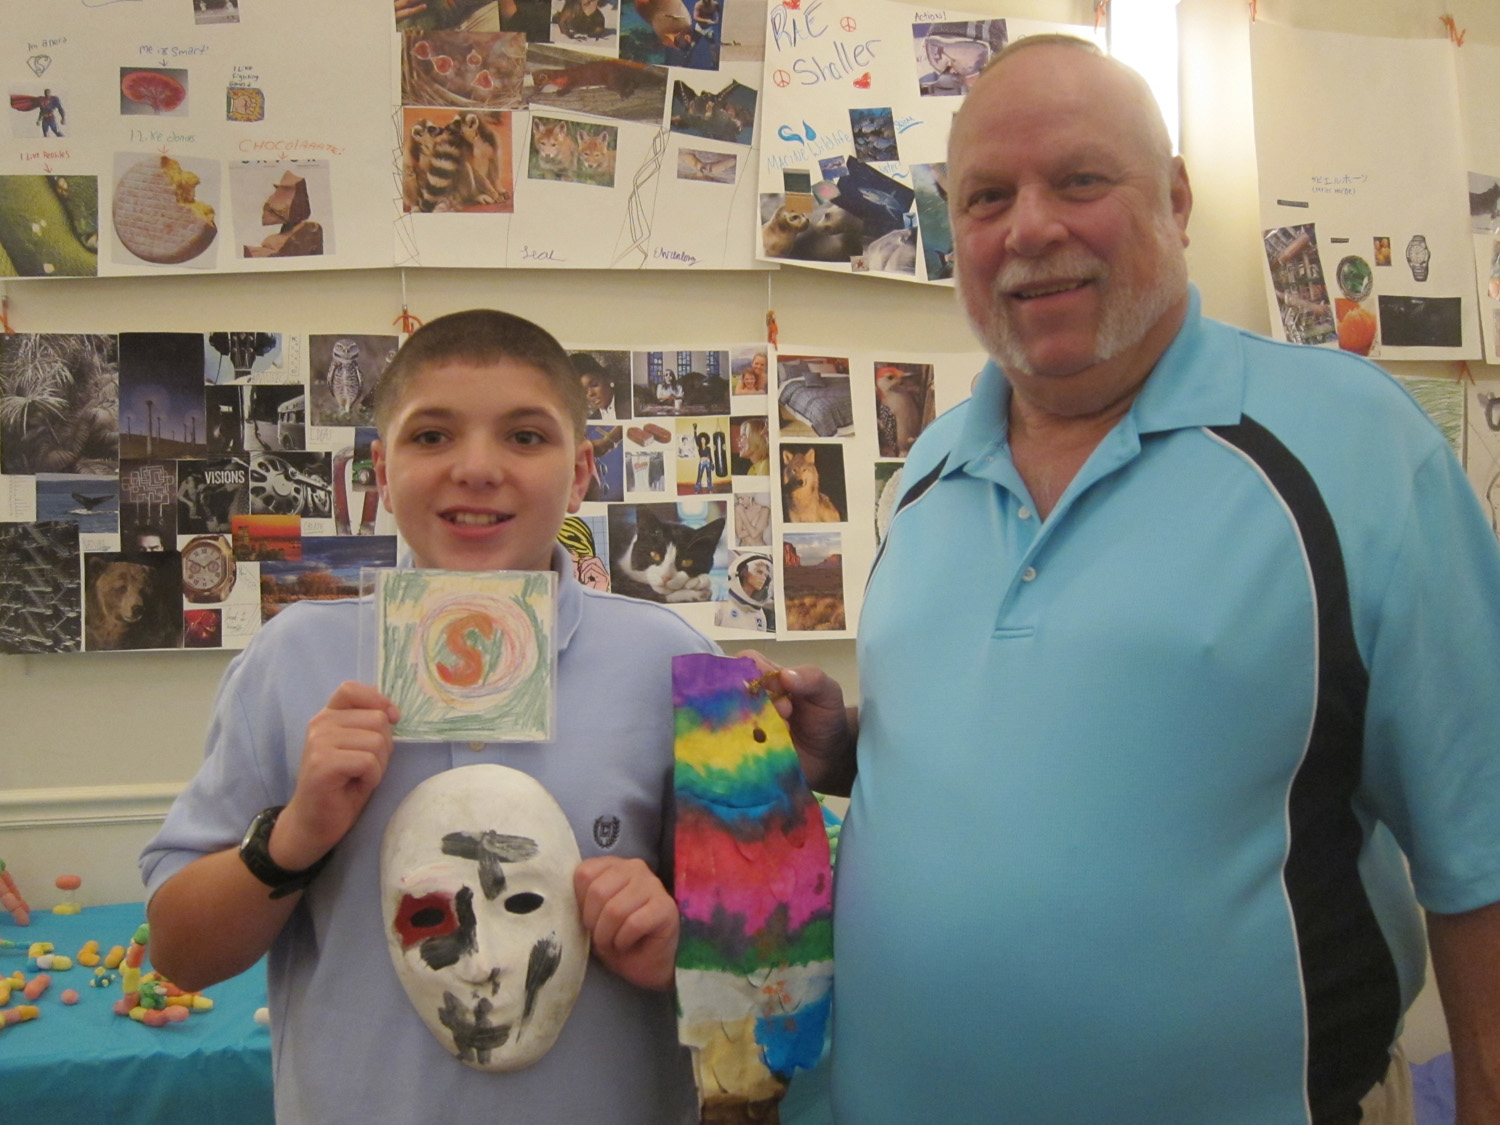 RJFS TTE shaun with art and dad